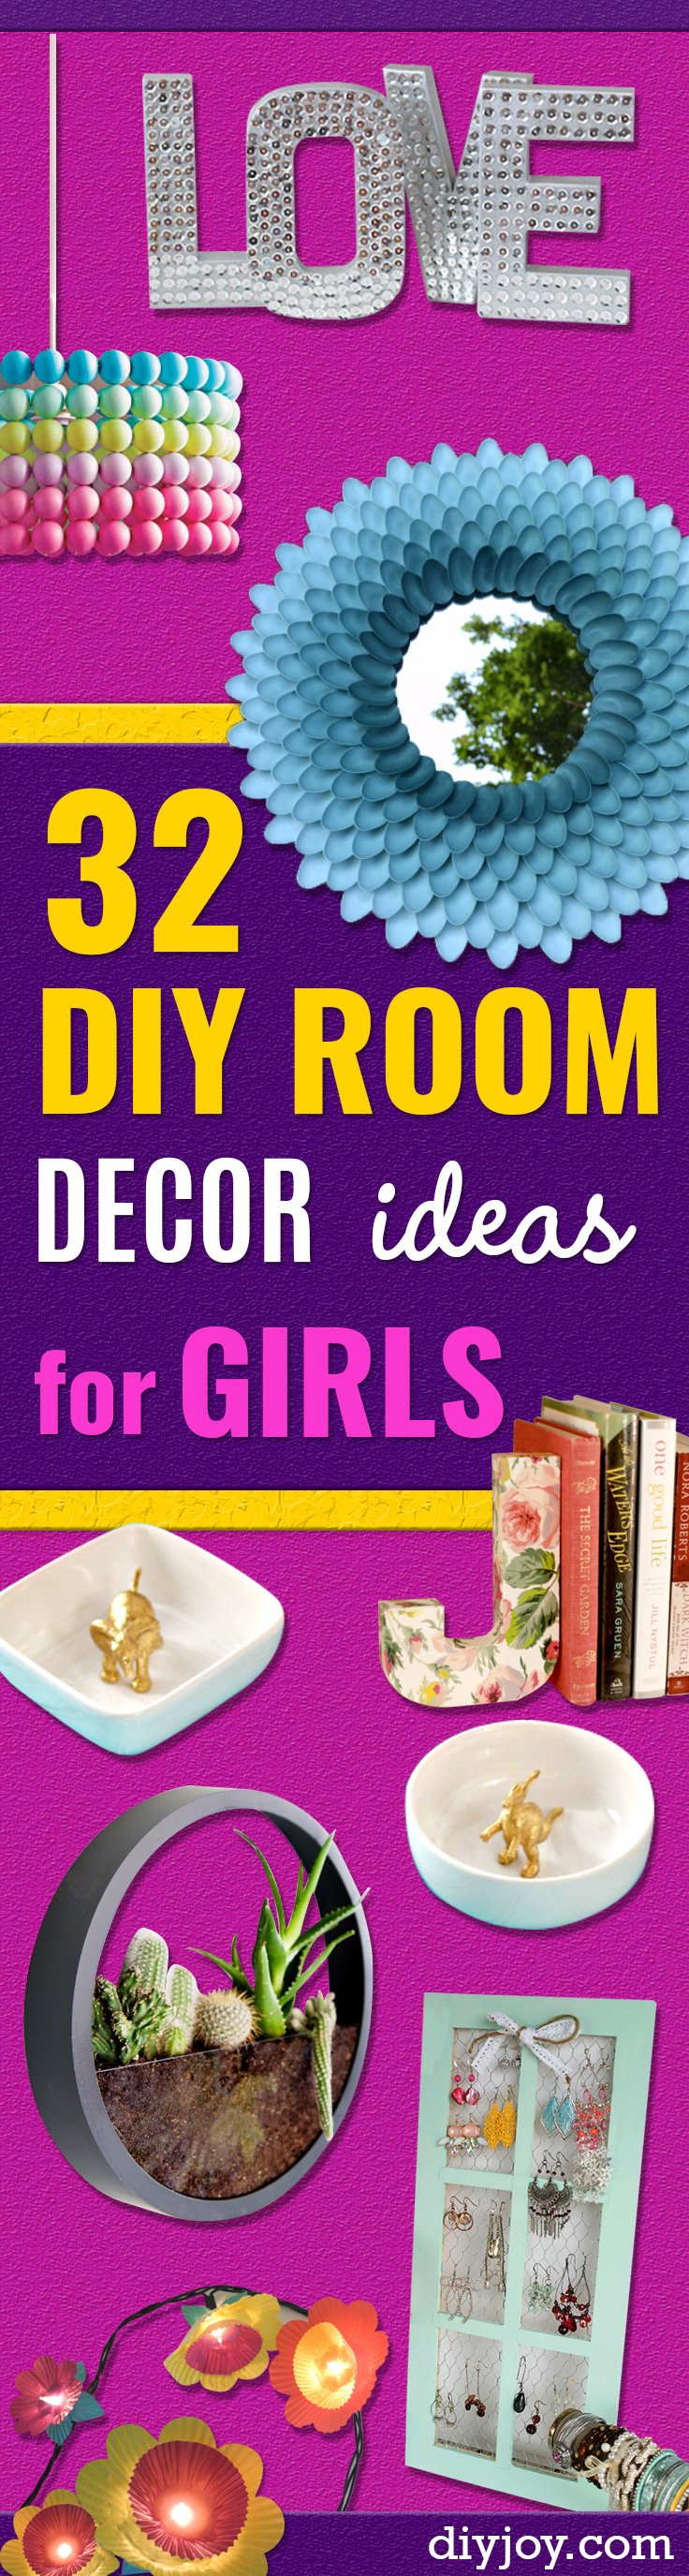 diy room decor ideas for girls- Awesome Do It Yourself Room Decor For Girls, Room Decorating Ideas, Creative Room Decor For Girls, Bedroom Accessories, easy Cute Room Decor For Girls